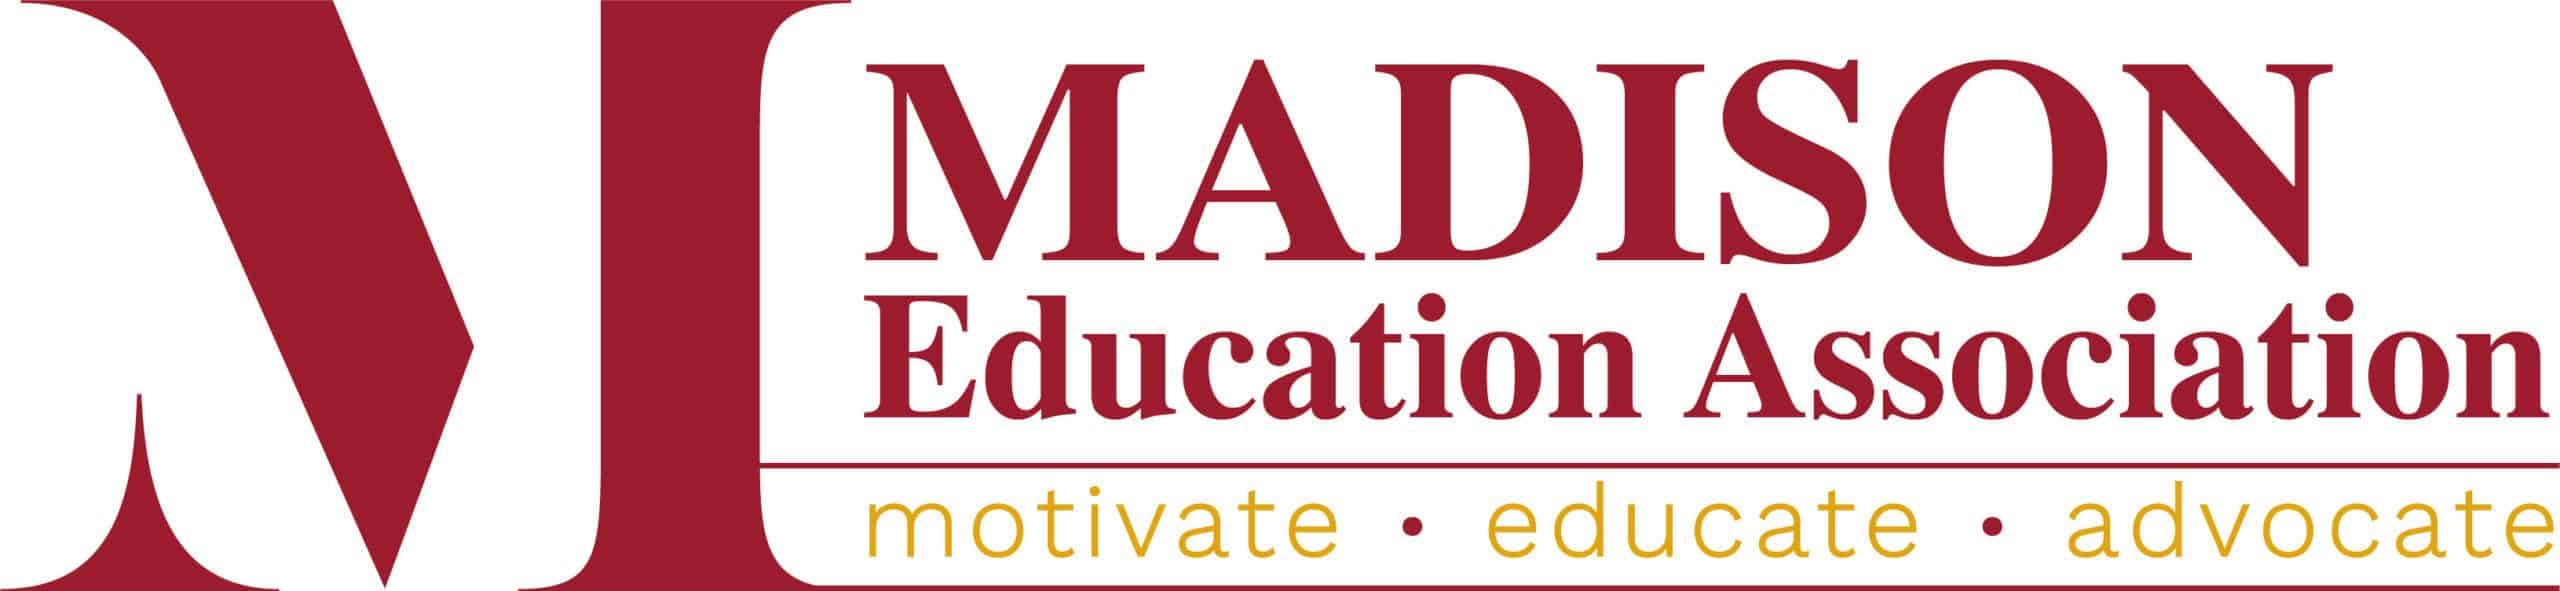 Madison Education Association